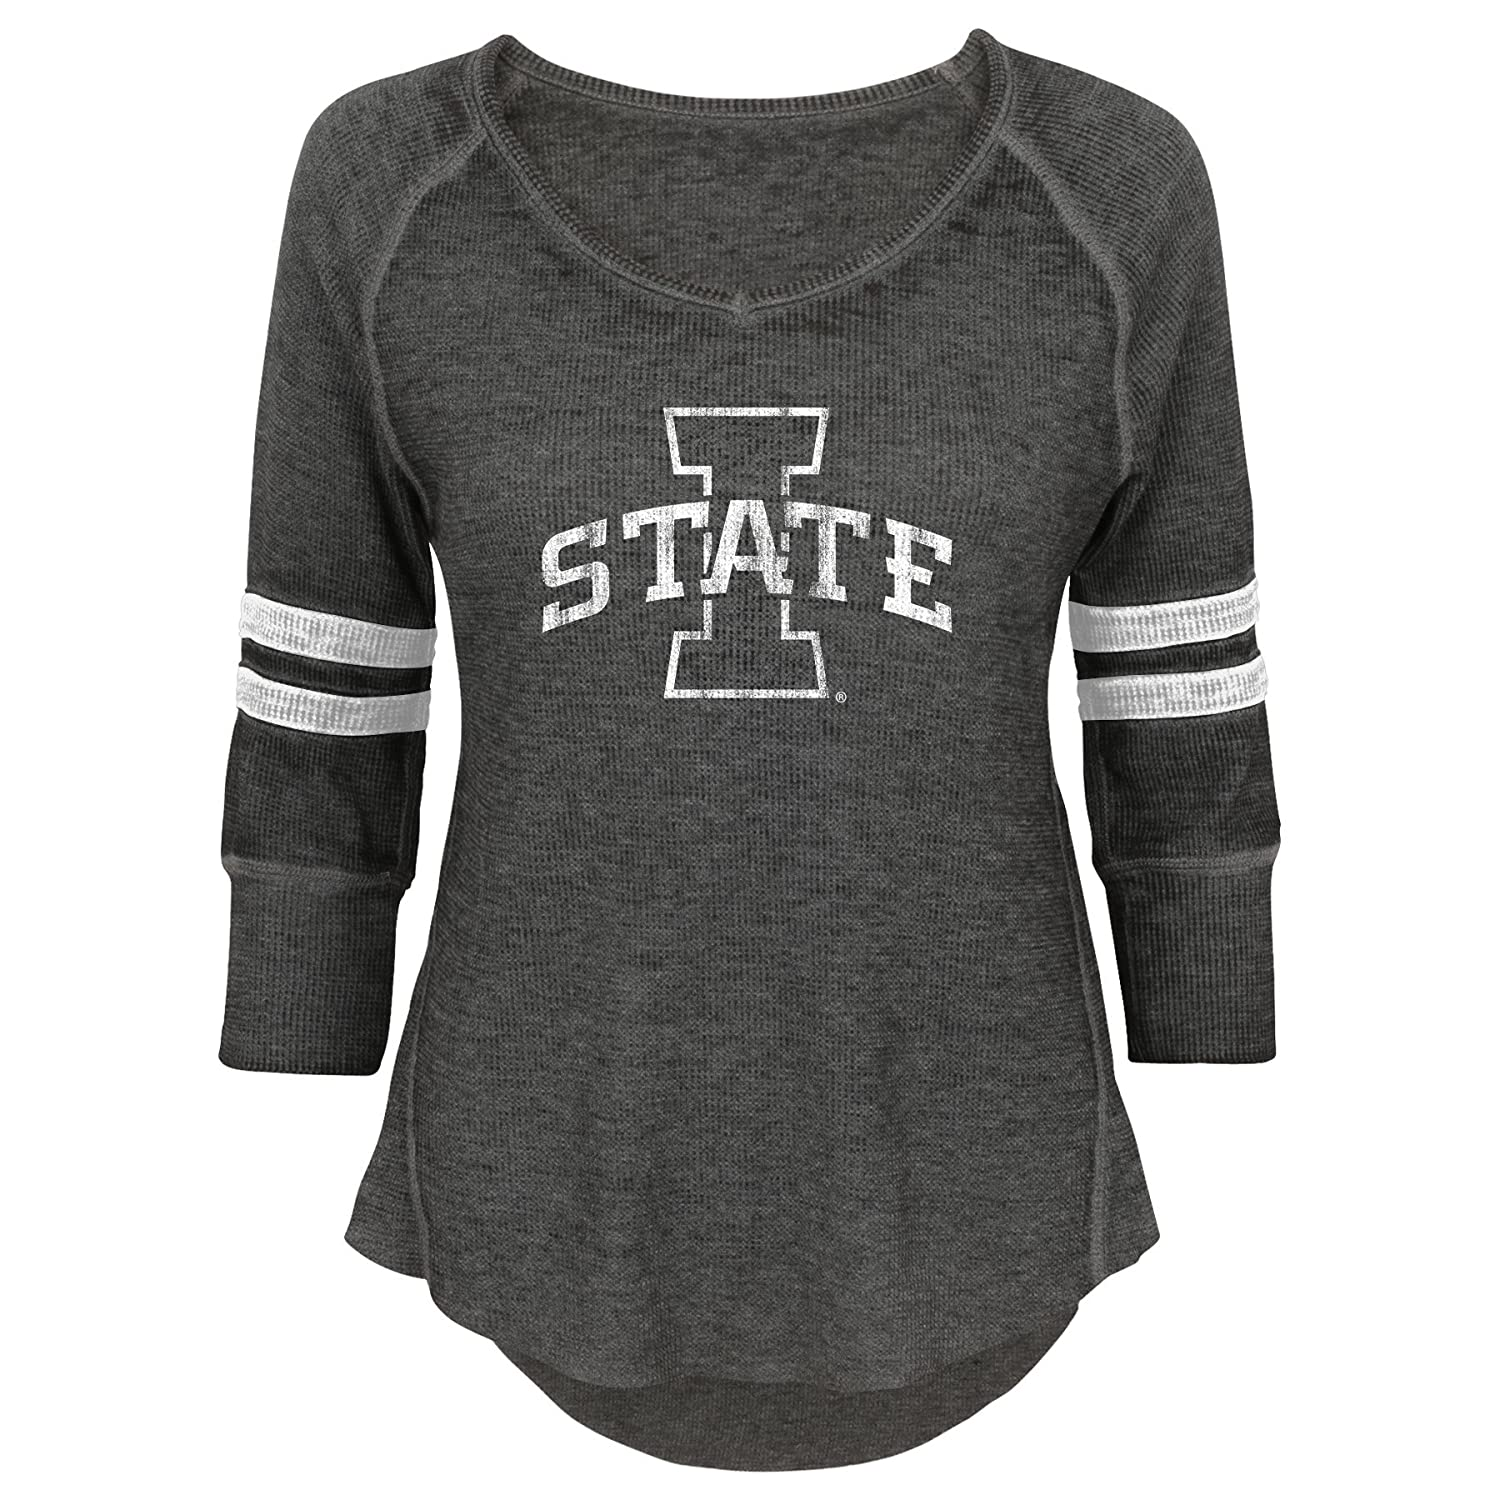 NCAA Iowa State Cyclones Juniors Outerstuff Relaxed 3//4 Raglan Thermal Top 3-5 Small Team Color